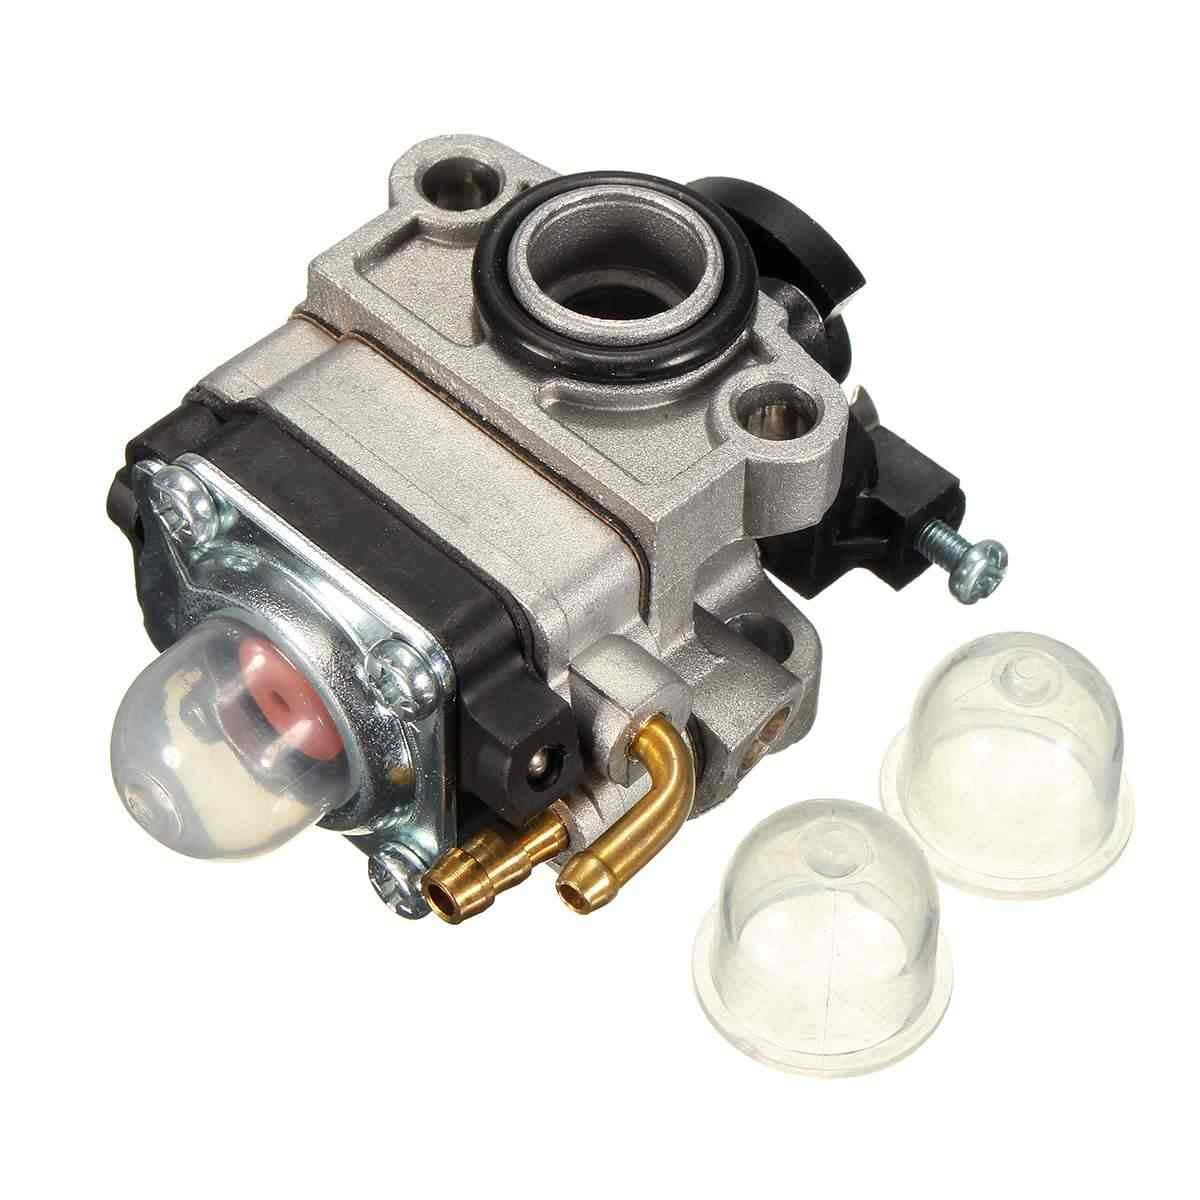 1 Pc Lawn Carburetor Carb For 2 Cycle/Stroke Mantis/Echo Tillers